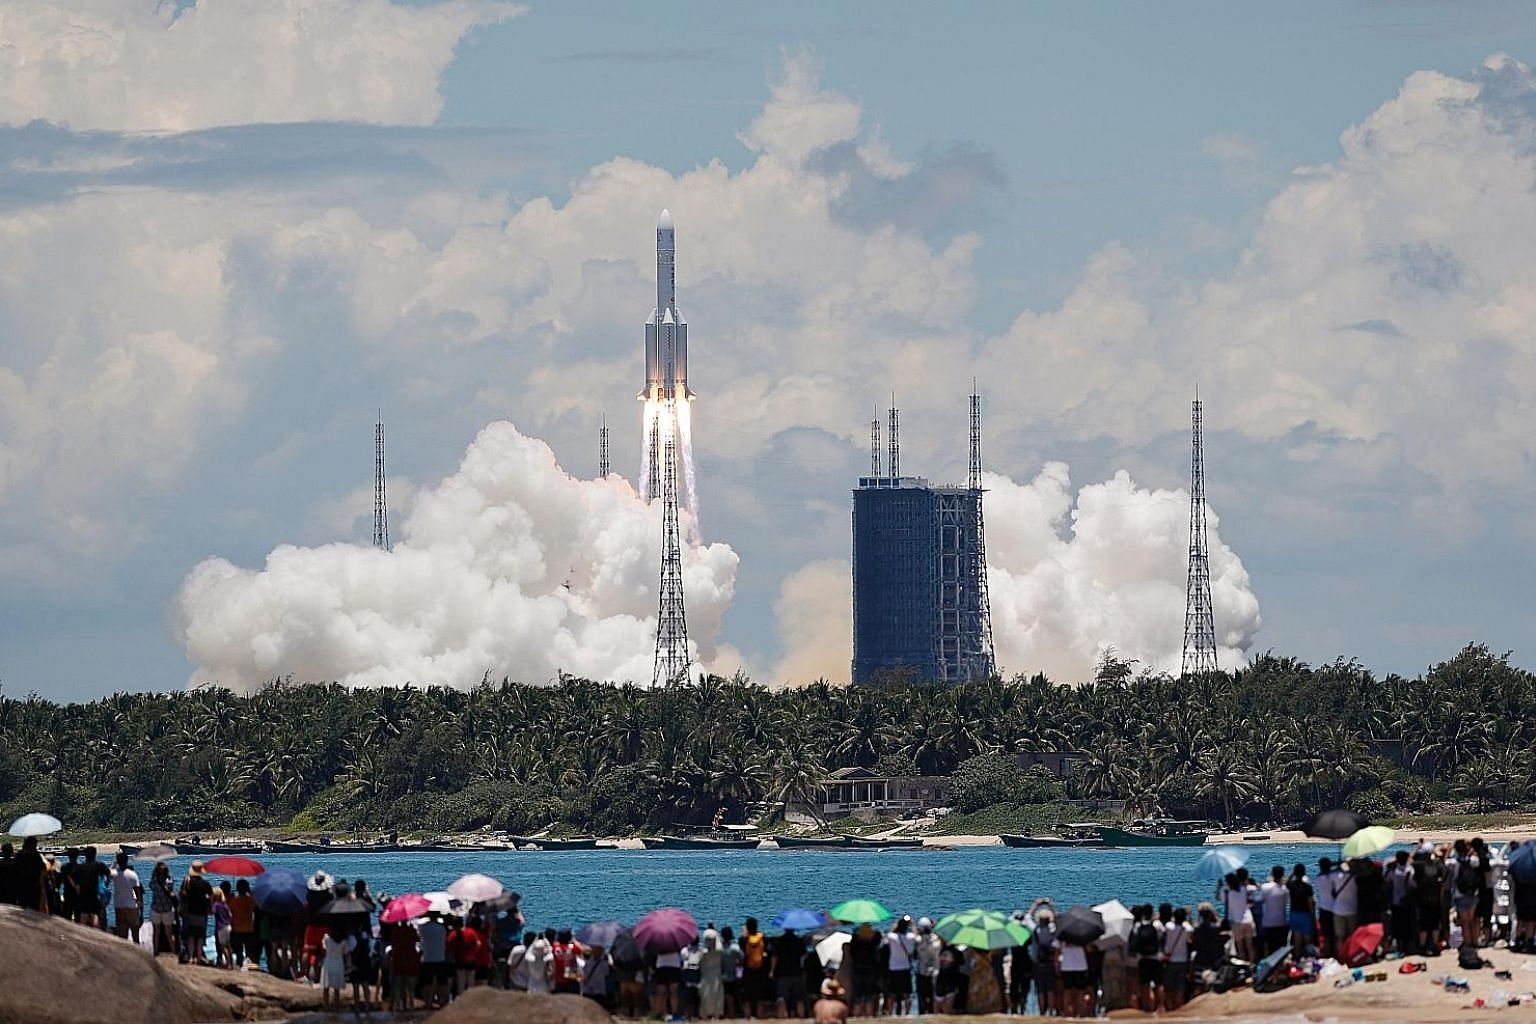 A crowd of onlookers watching from a beach as the Long March 5 Y-4 rocket, carrying the unmanned Tianwen-1 probe, blasted off on its Mars mission yesterday. This photo from China Daily shows the rocket launch at the Wenchang Space Launch Centre on Ch